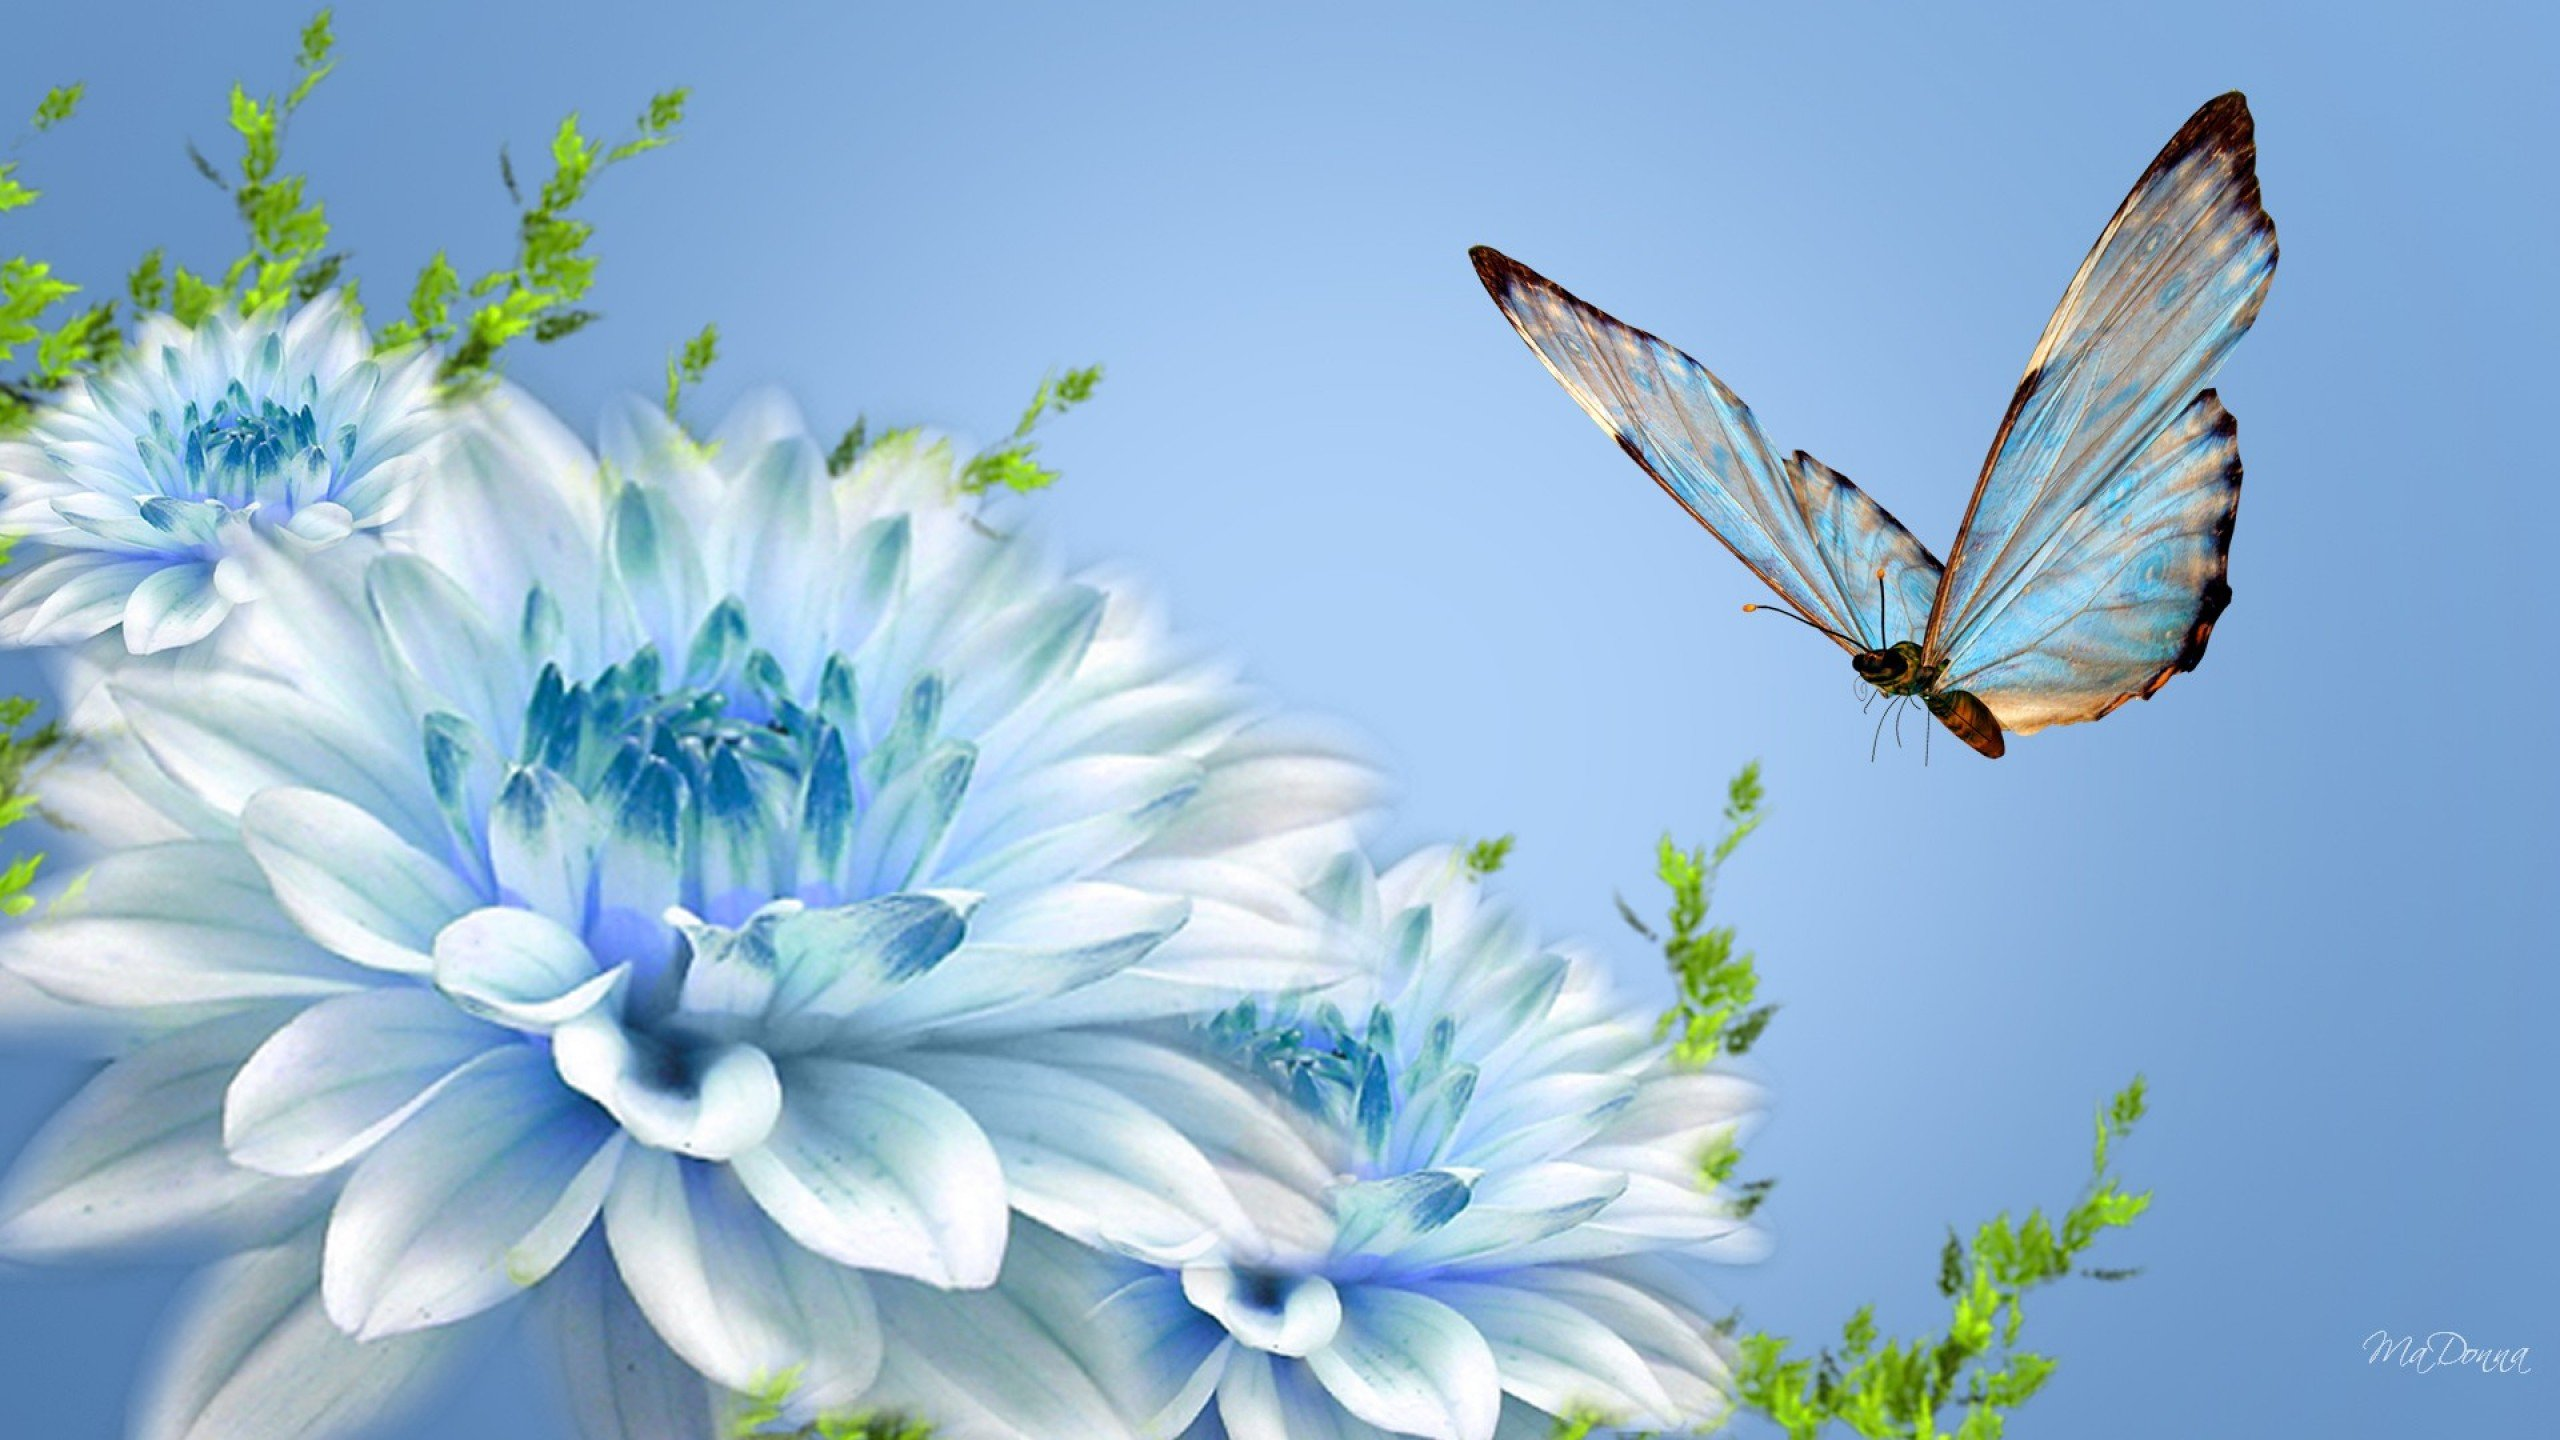 Butterfly and Light Blue Flowers Wallpaper   HD Background 2560x1440